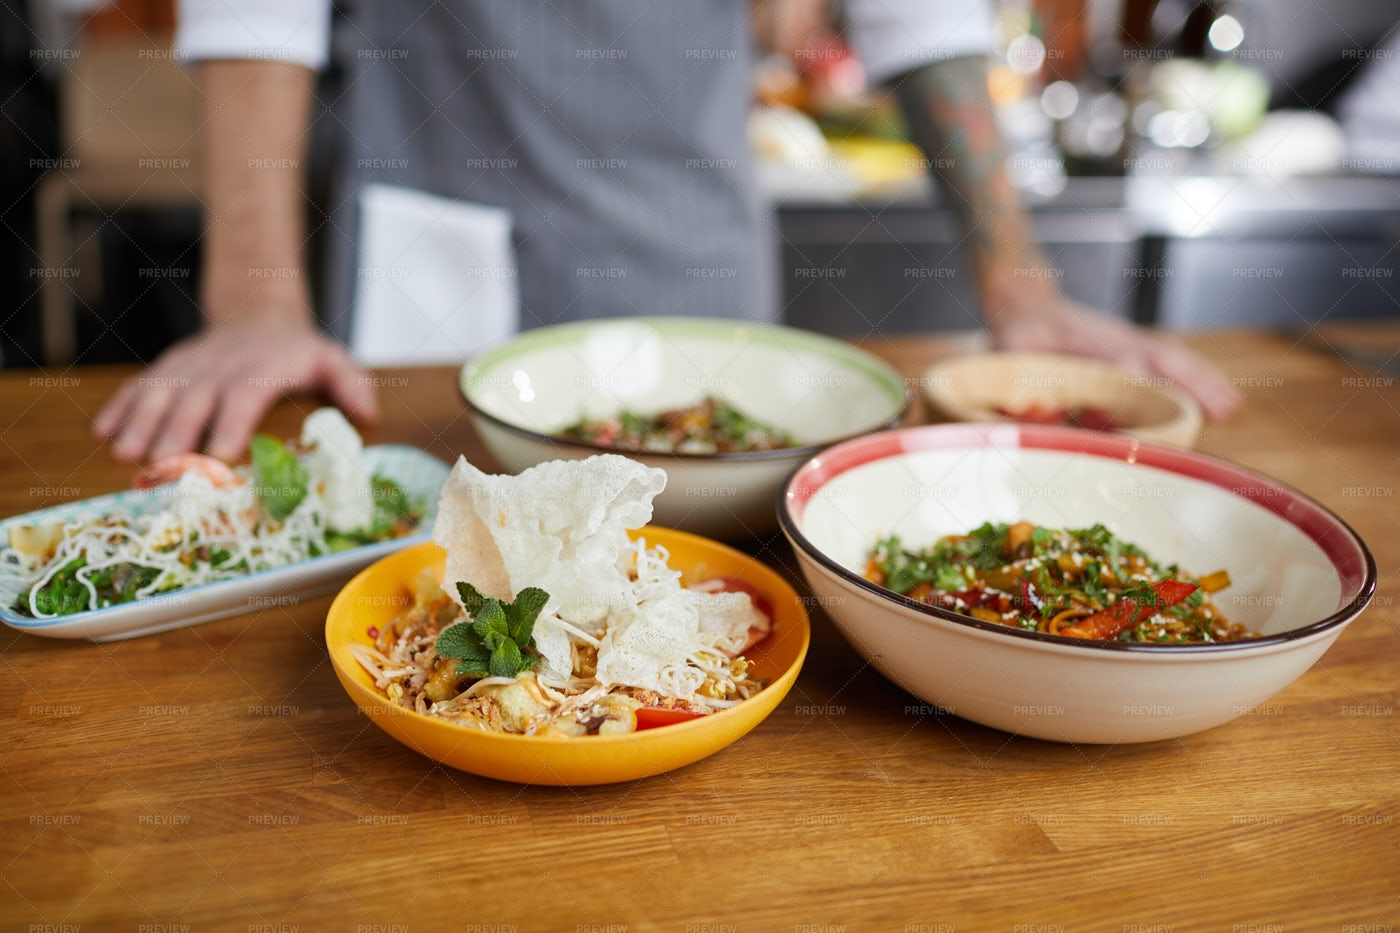 Asian Food On Table In Restaurant: Stock Photos